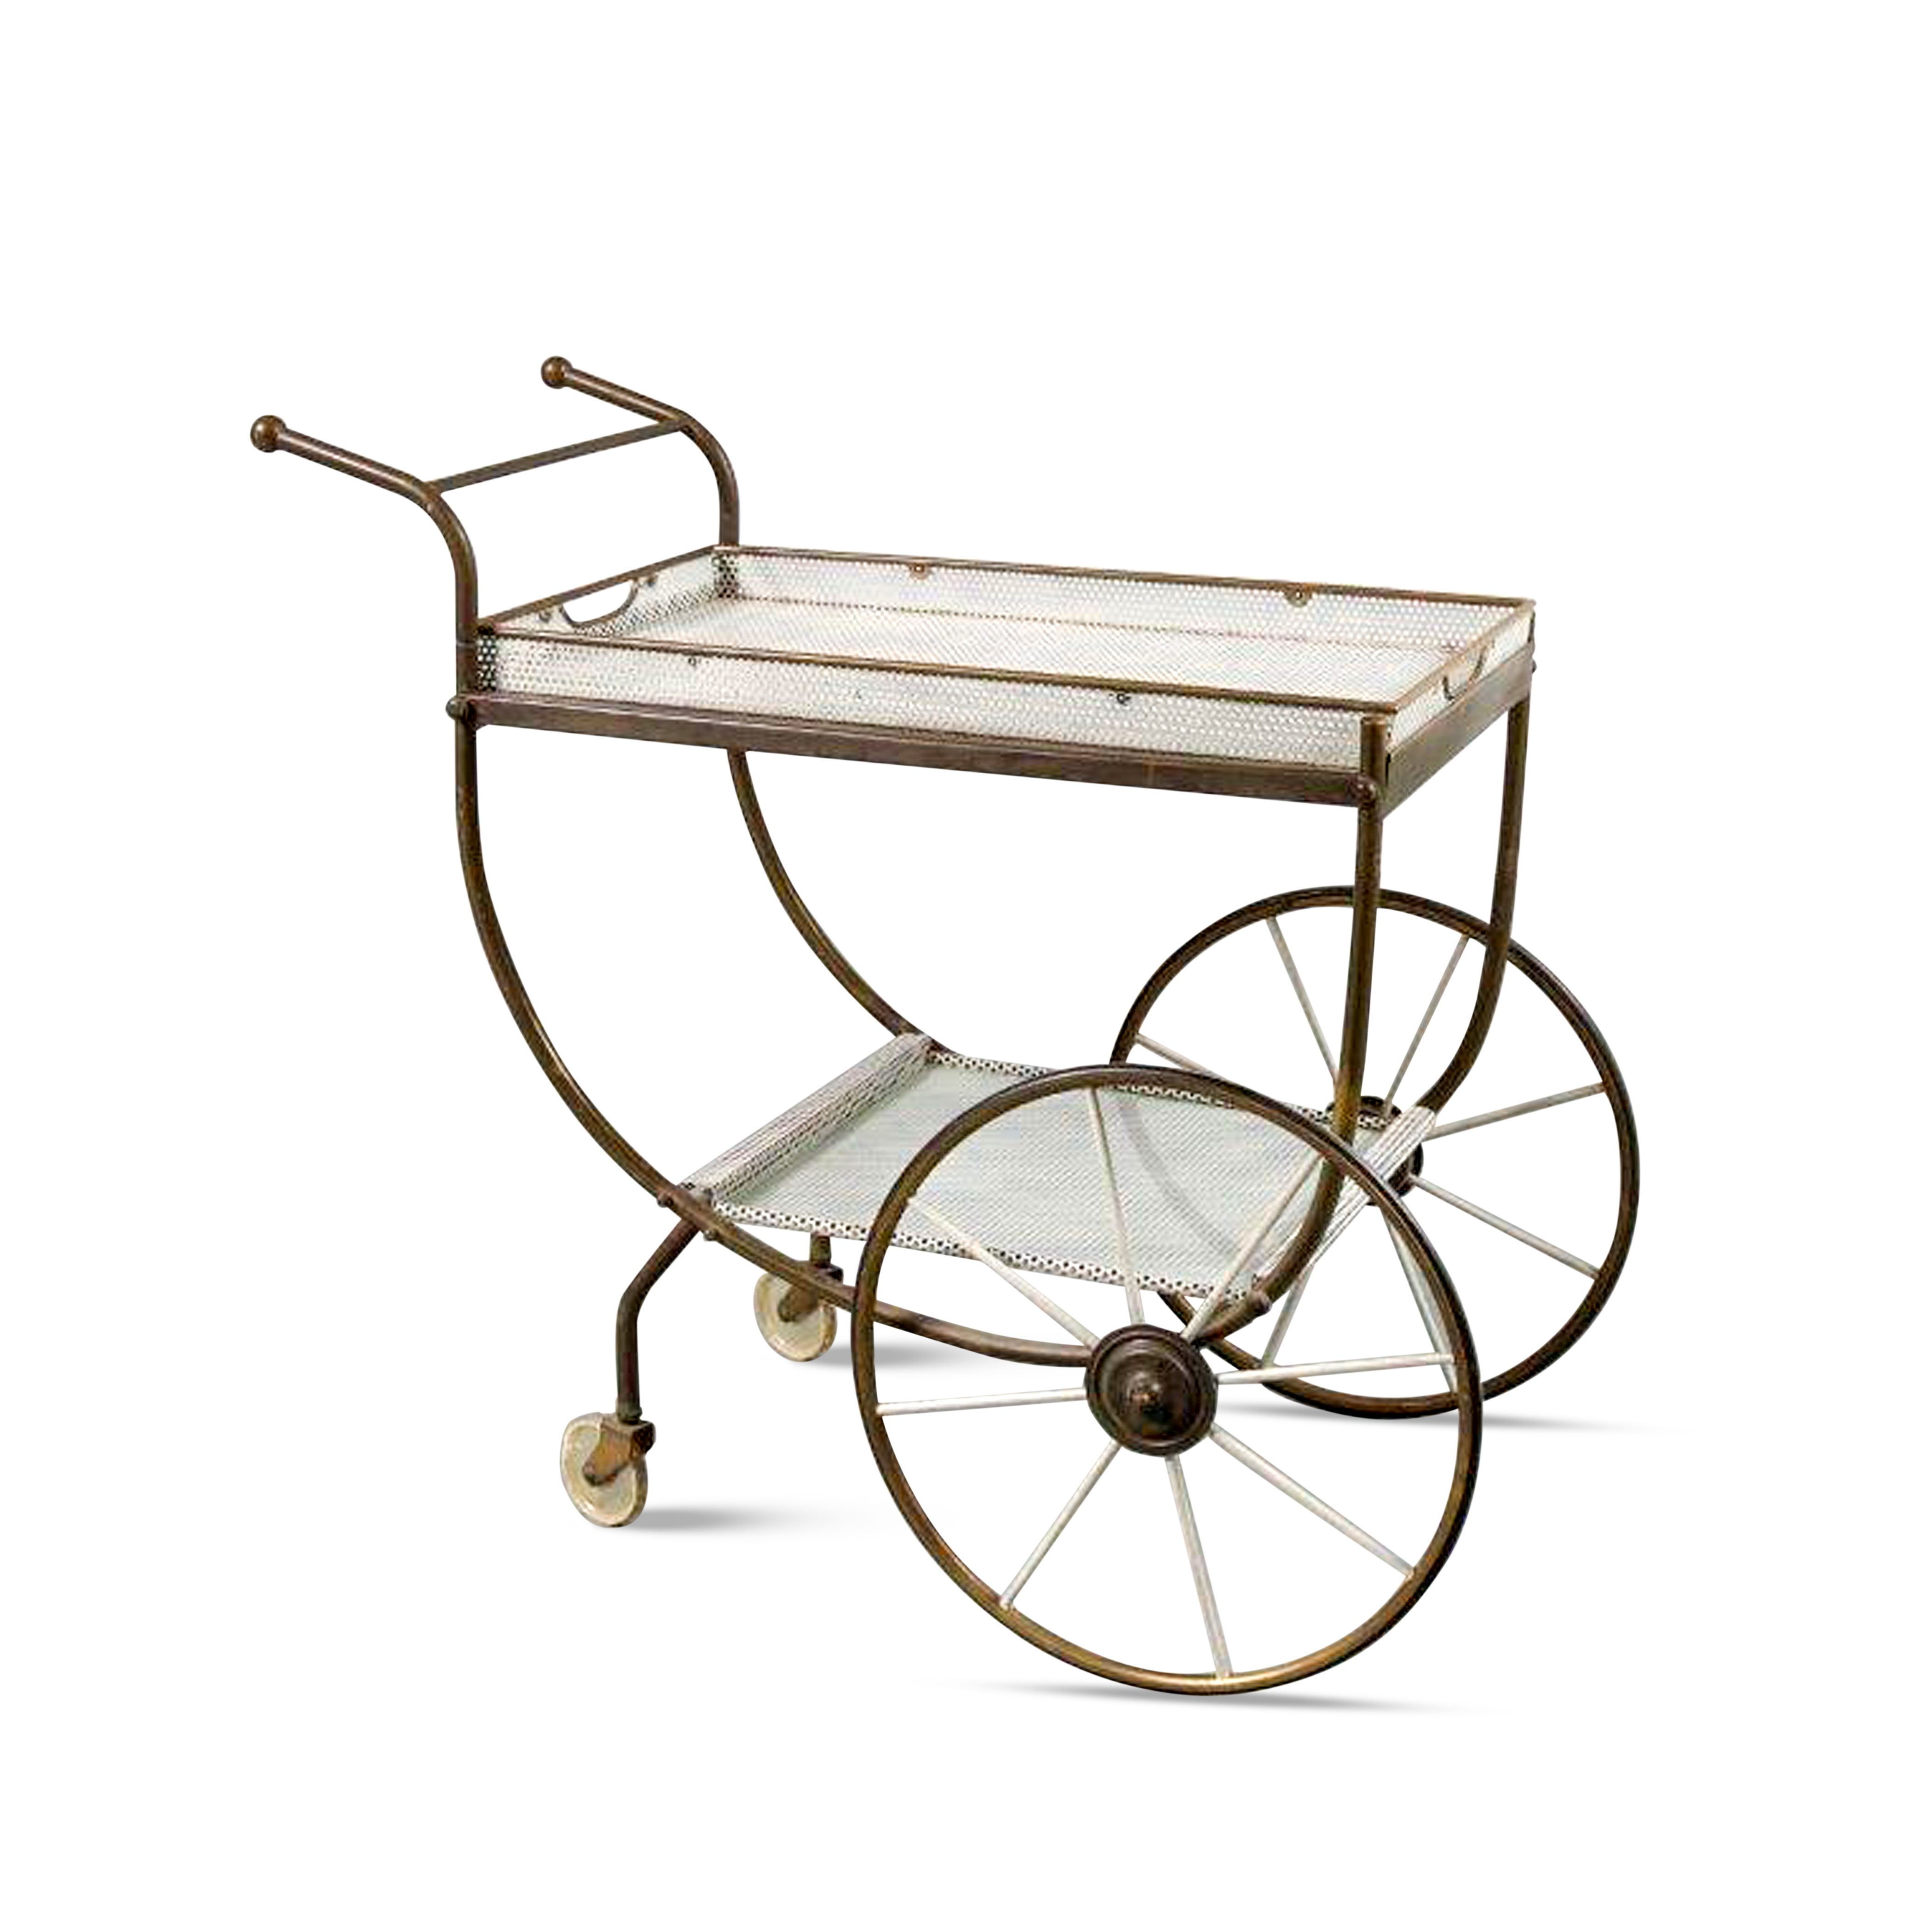 190801 (231) m23677 1950s Brass tea trolley with white perforated metal trays Svenskt Tenn Denmark